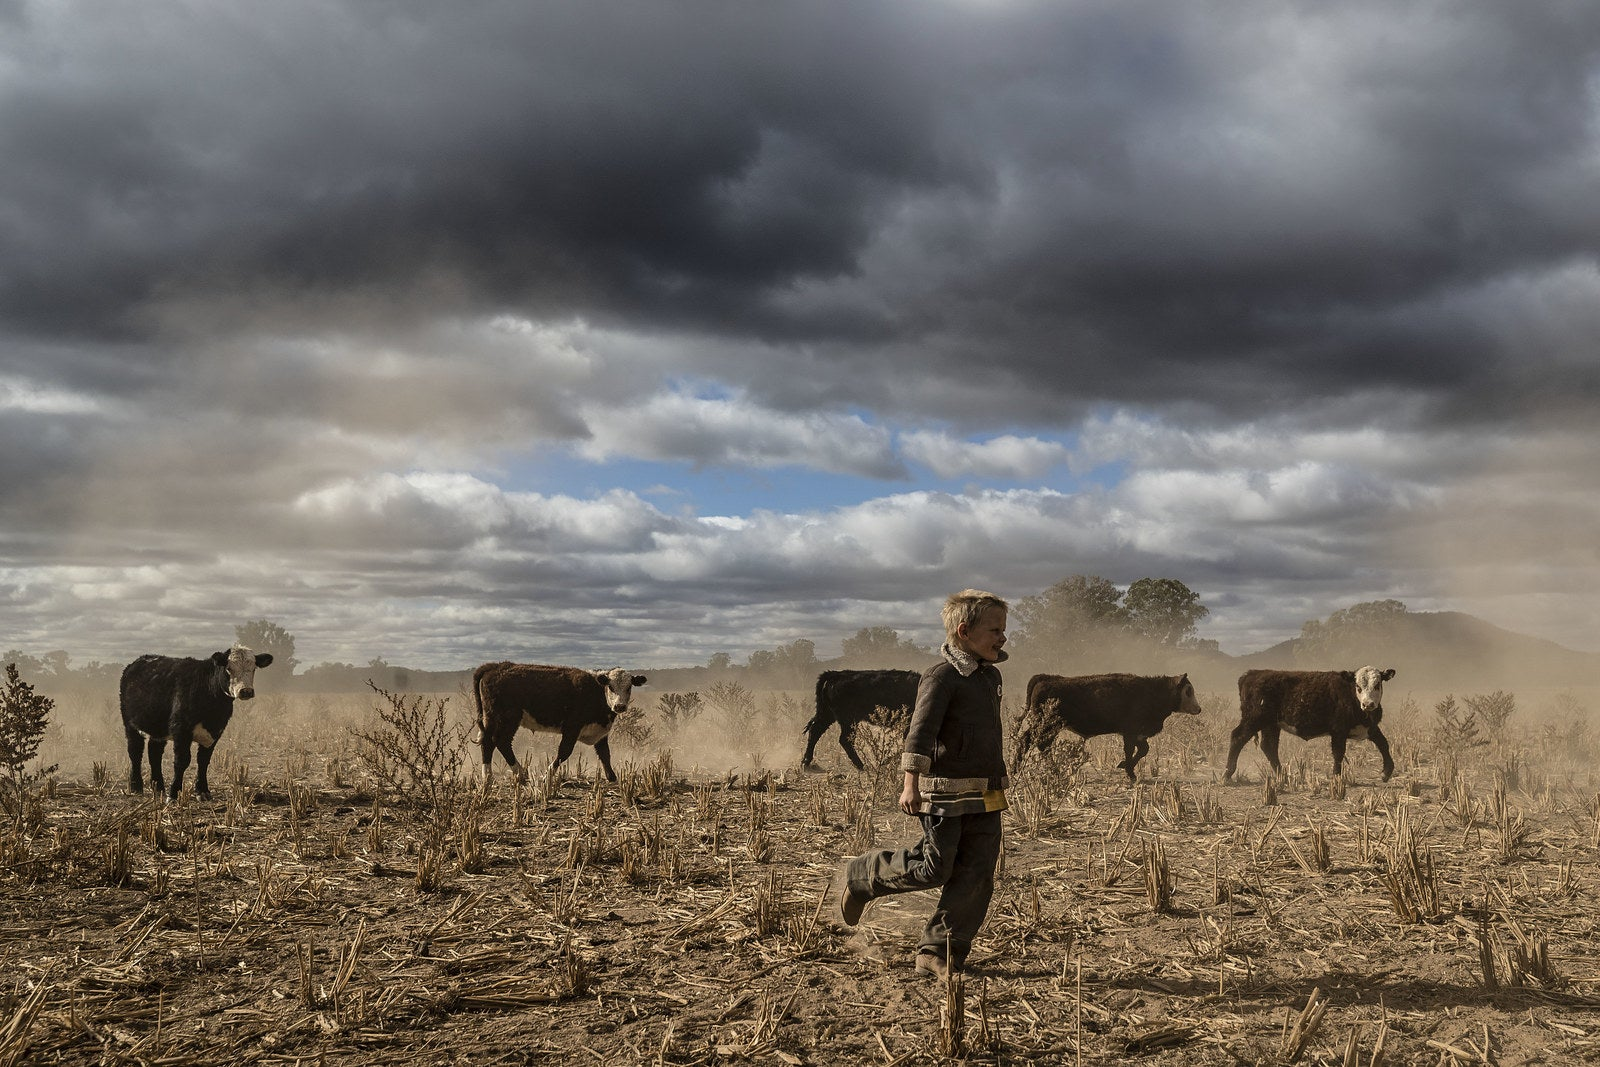 Harry Taylor, 6, plays on the dust bowl his family farm has become during the drought on June 17 in Coonabarabran, New South Wales, Australia.